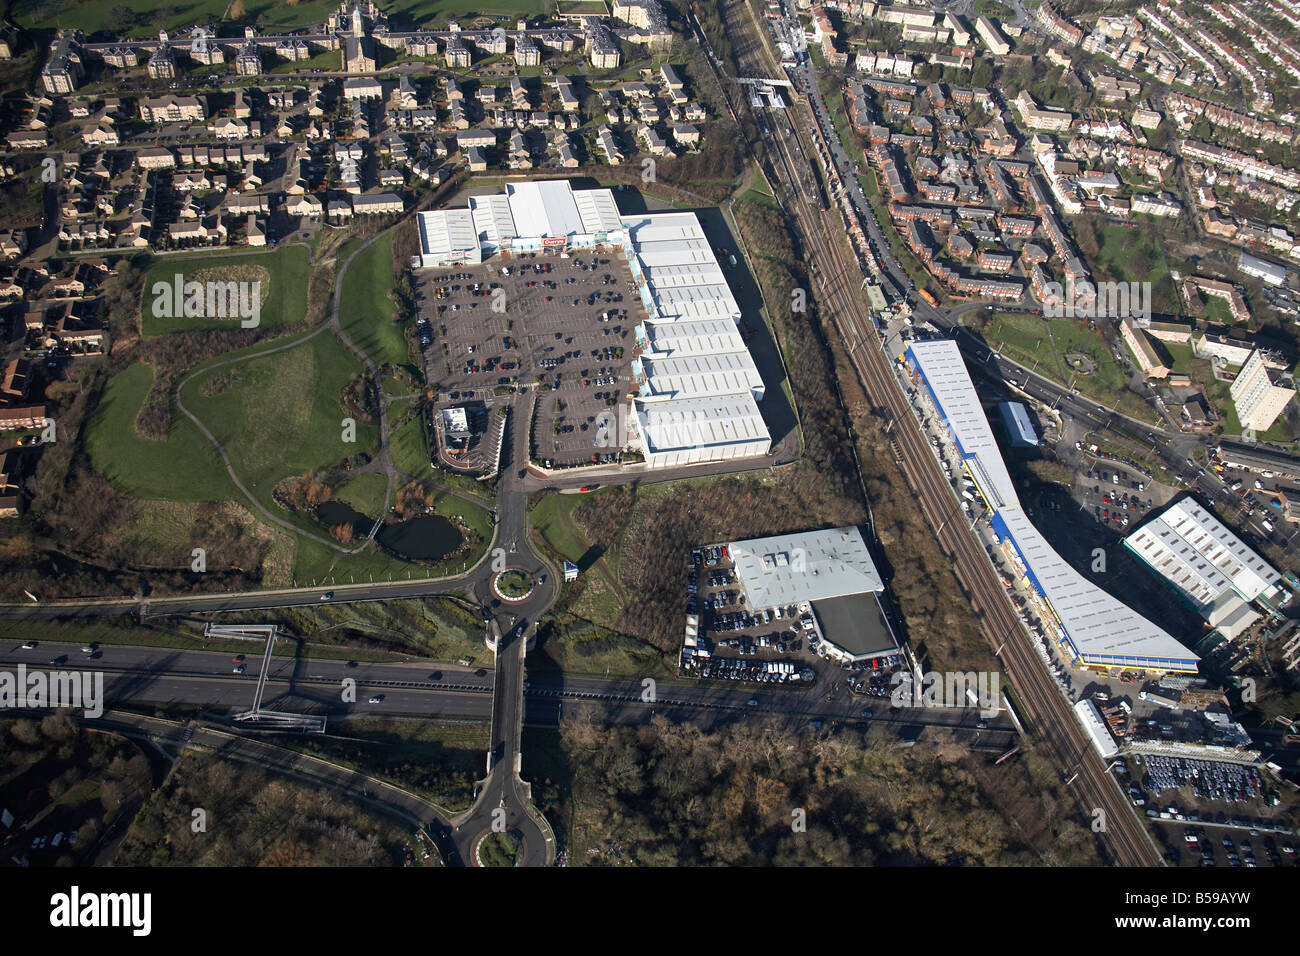 Aerial view north west of Friern Bridge Retail Park depot railway line Pinkham Way A406 suburban houses New Southgate - Stock Image